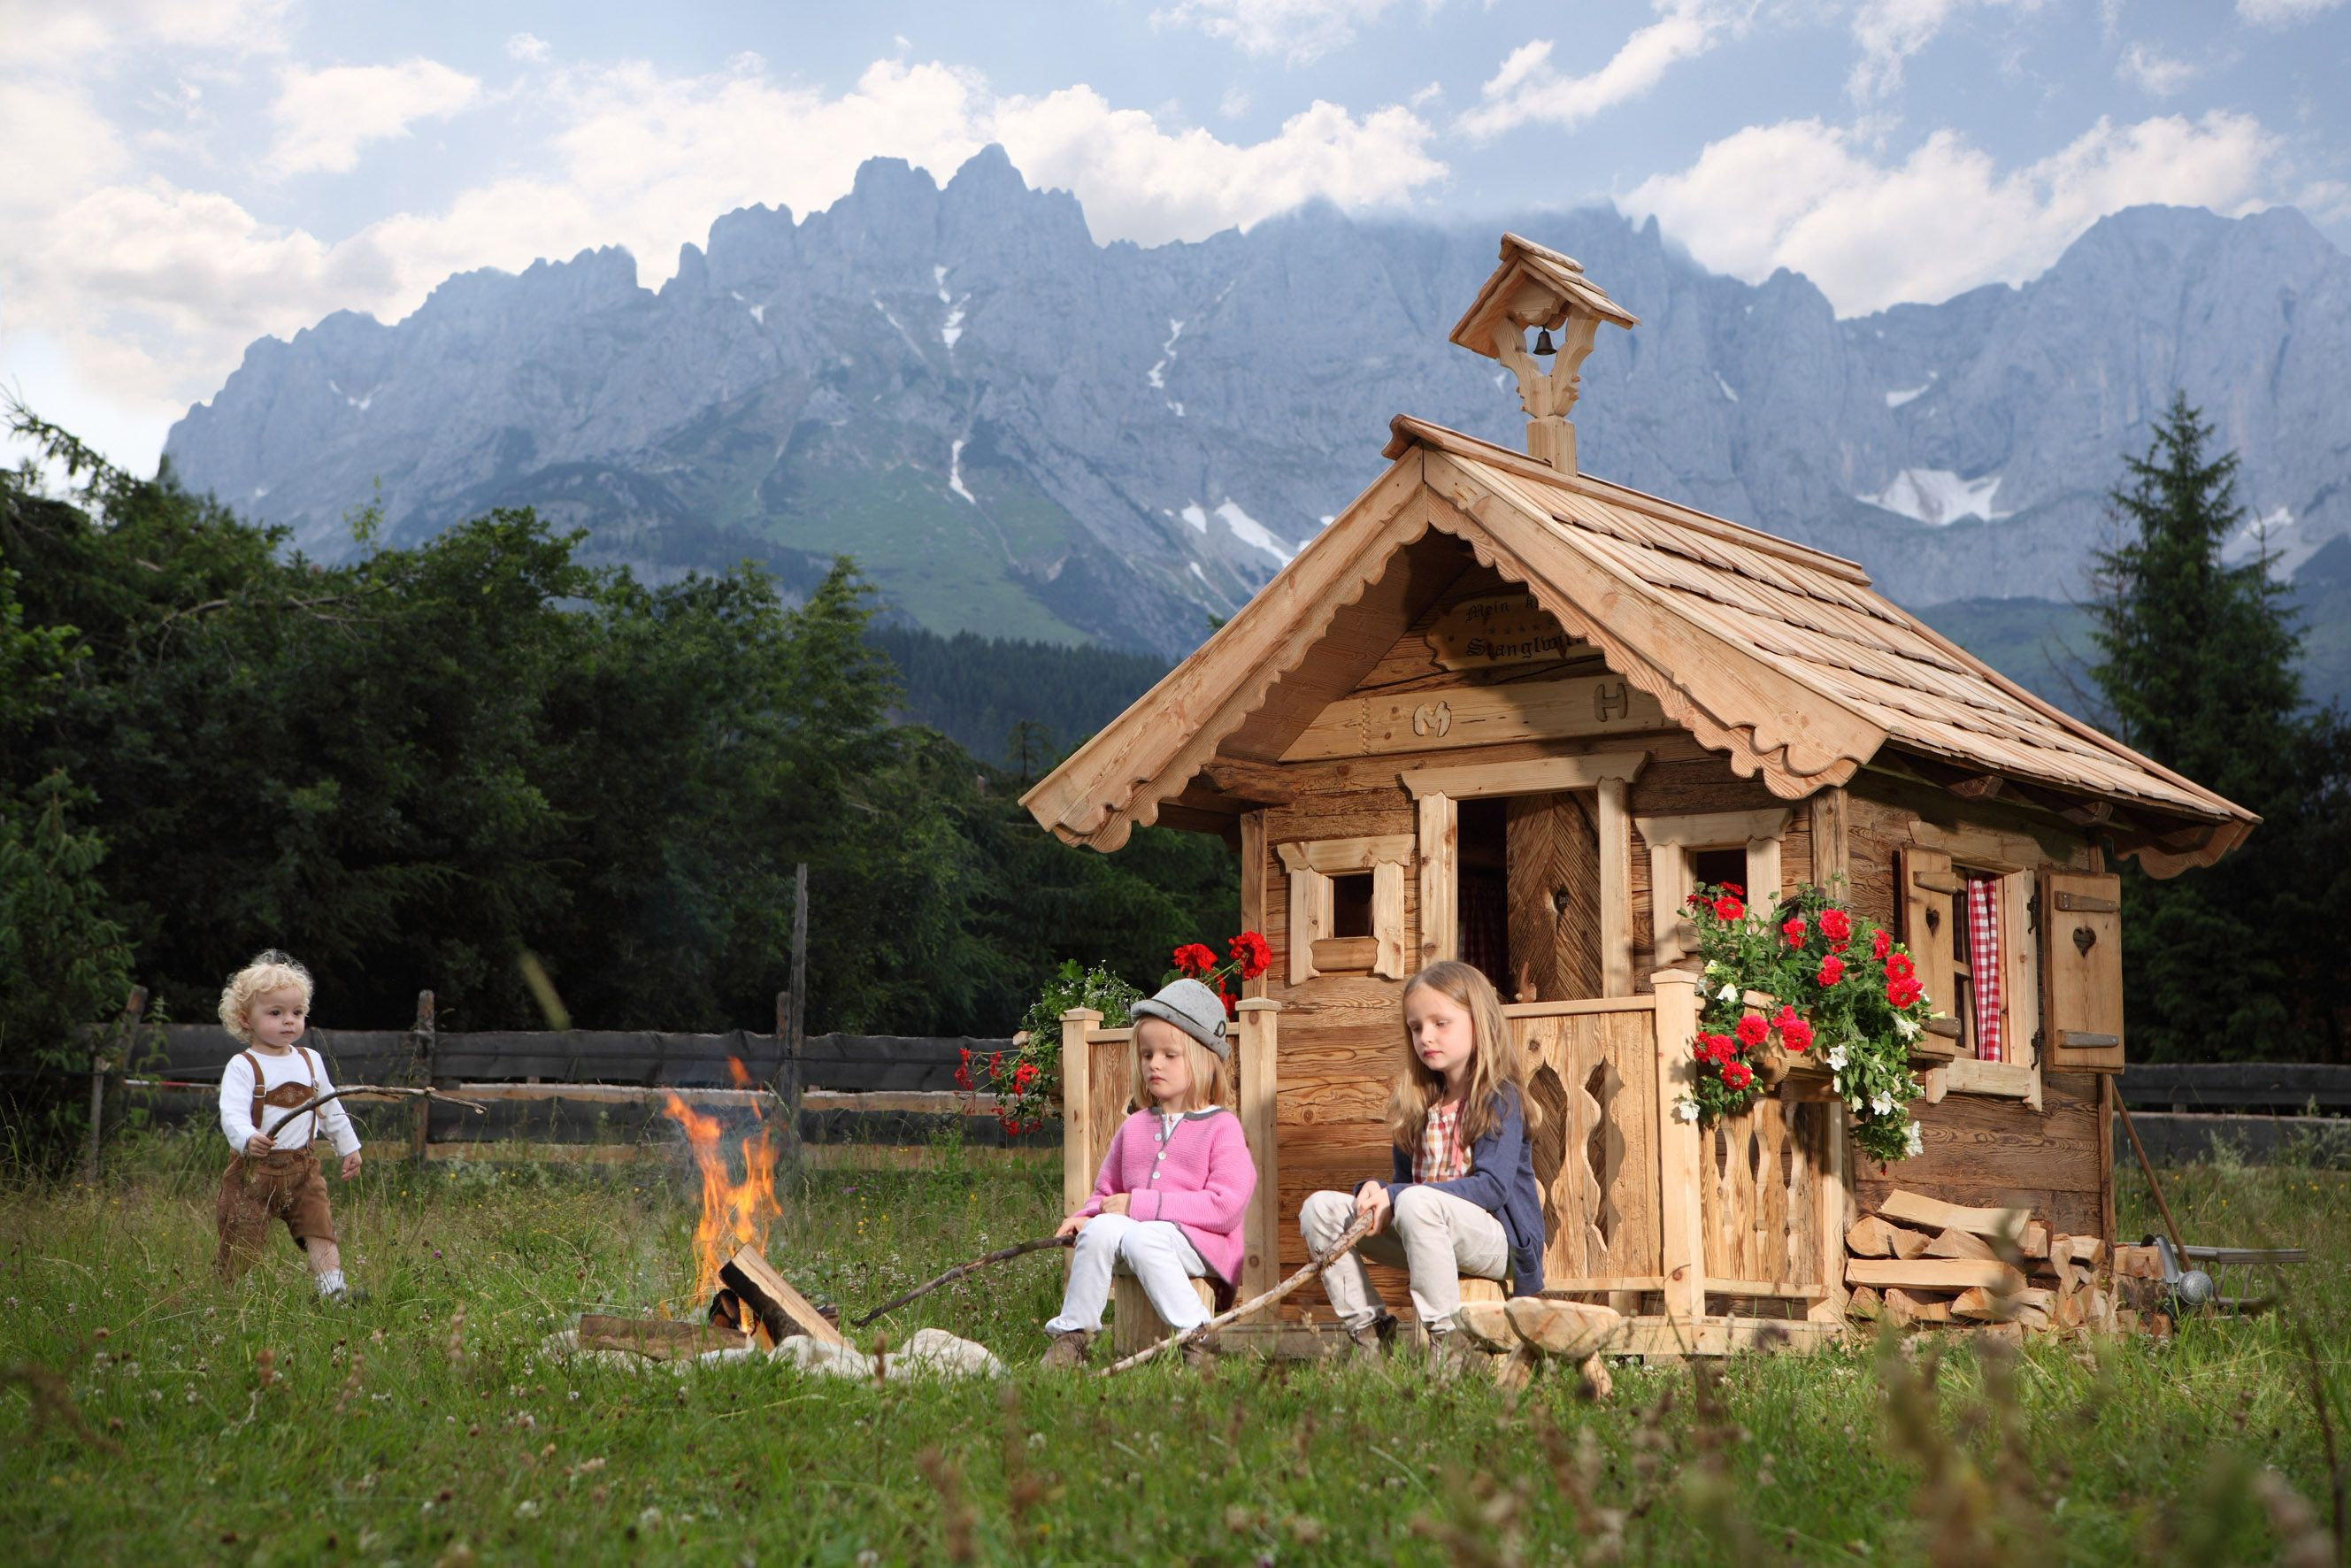 this play house is suited for all adventures. Made from solid wood with many details